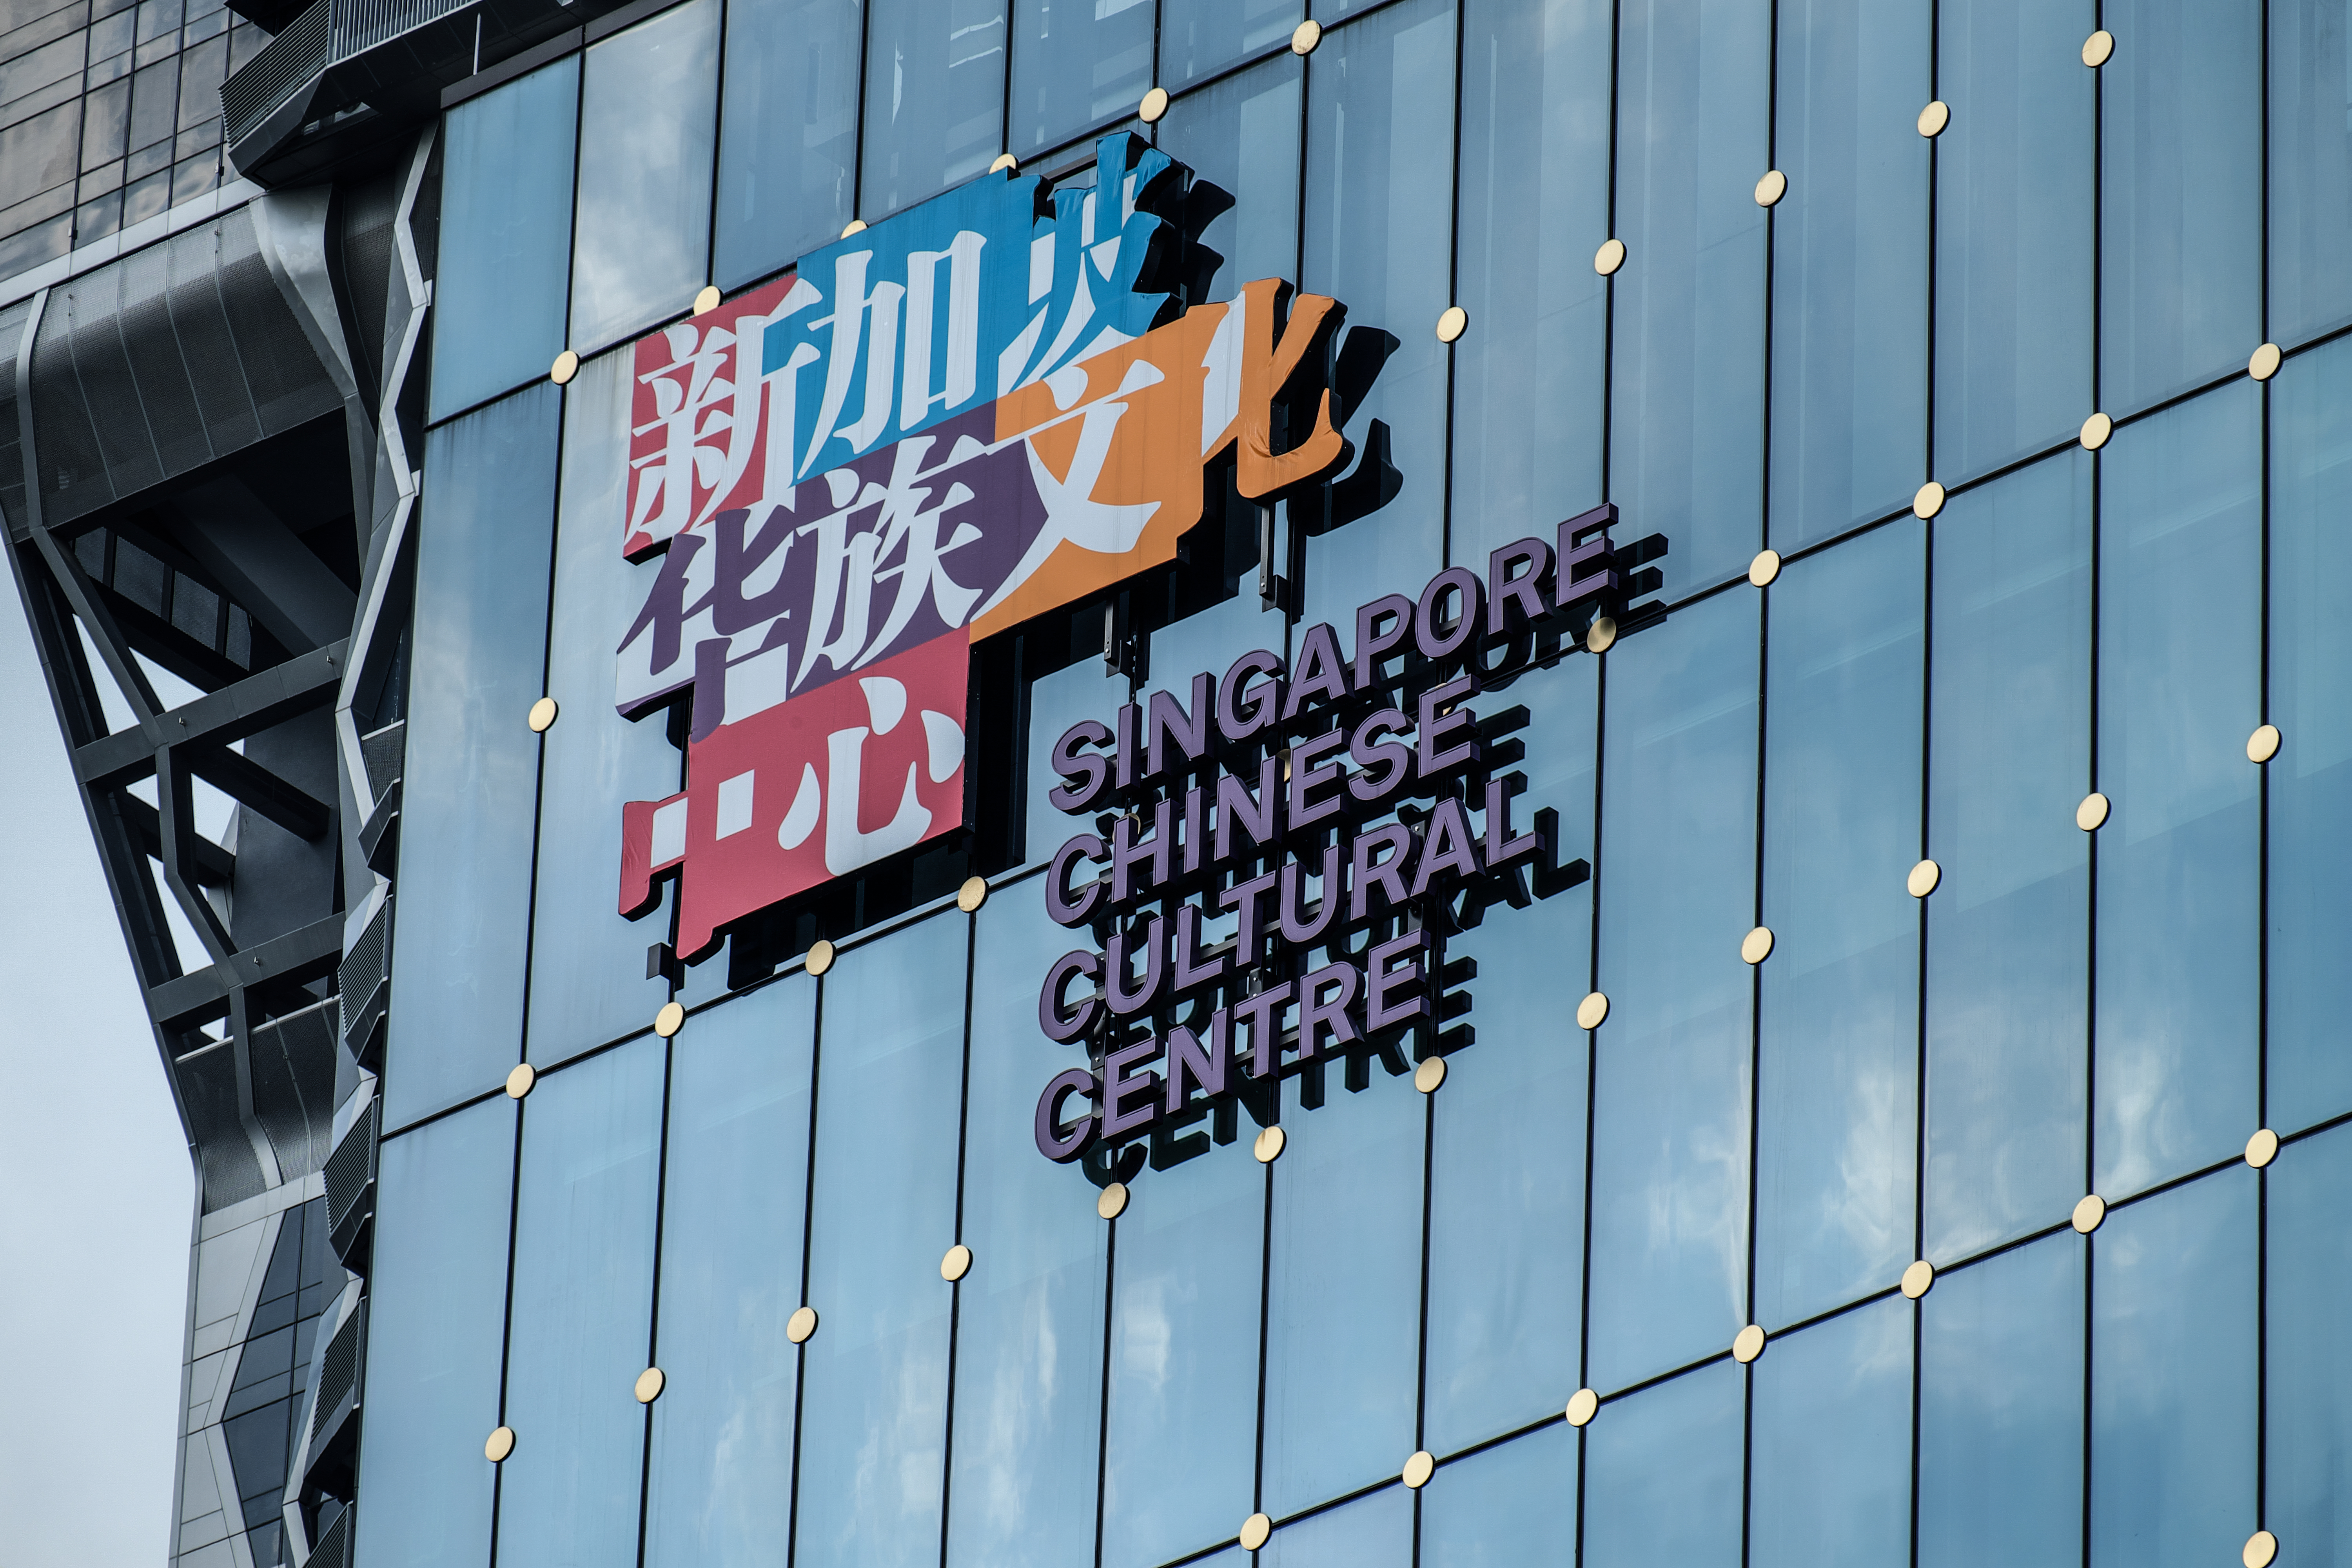 Singapore Chinese Cultural Centre